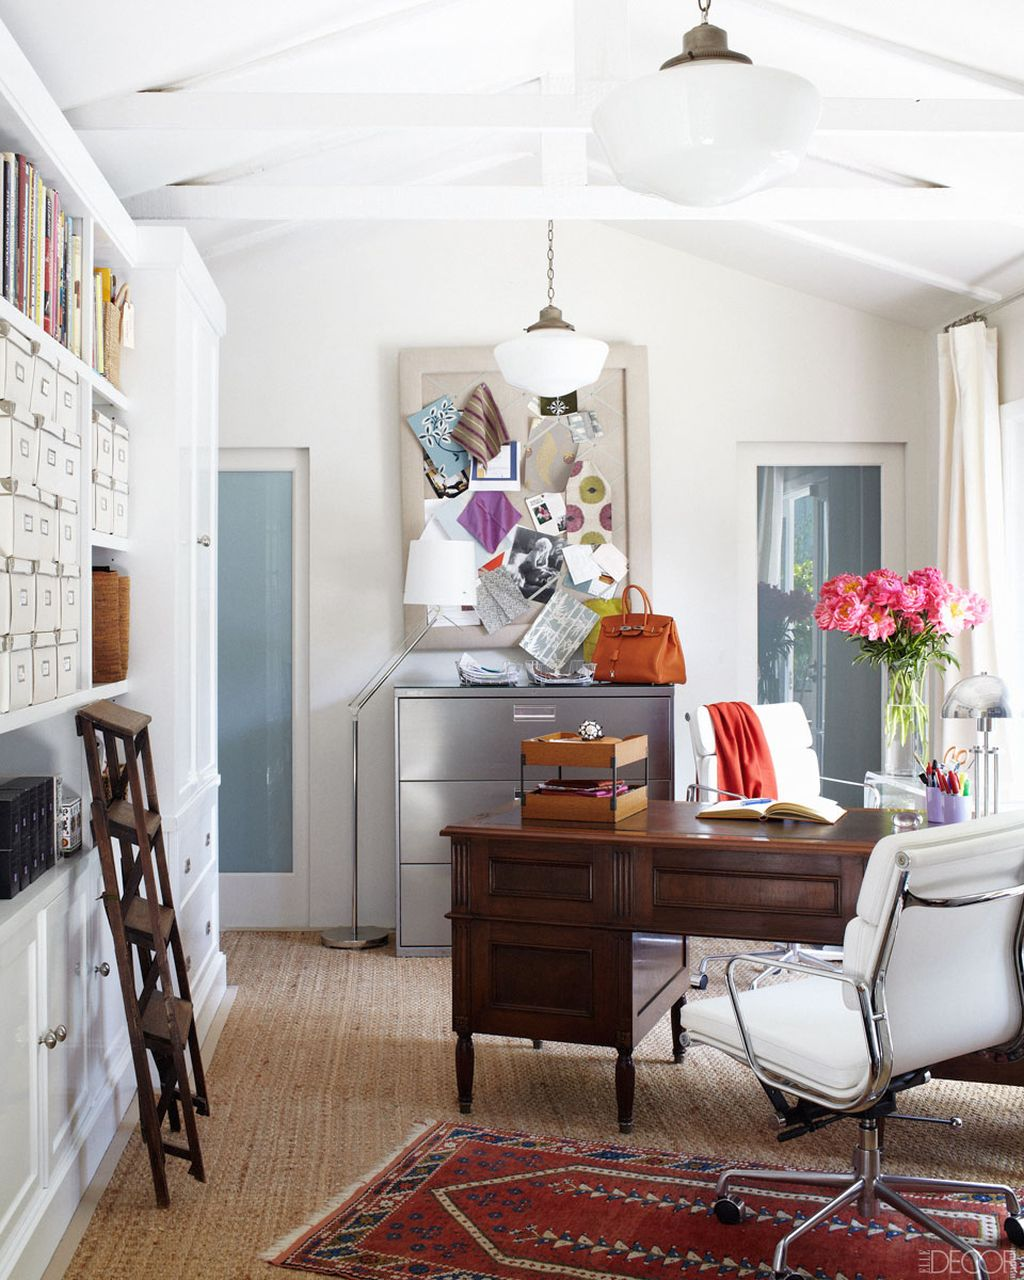 Great Home Design Ideas: 20 Inspiring Home Office Design Ideas For Small Spaces